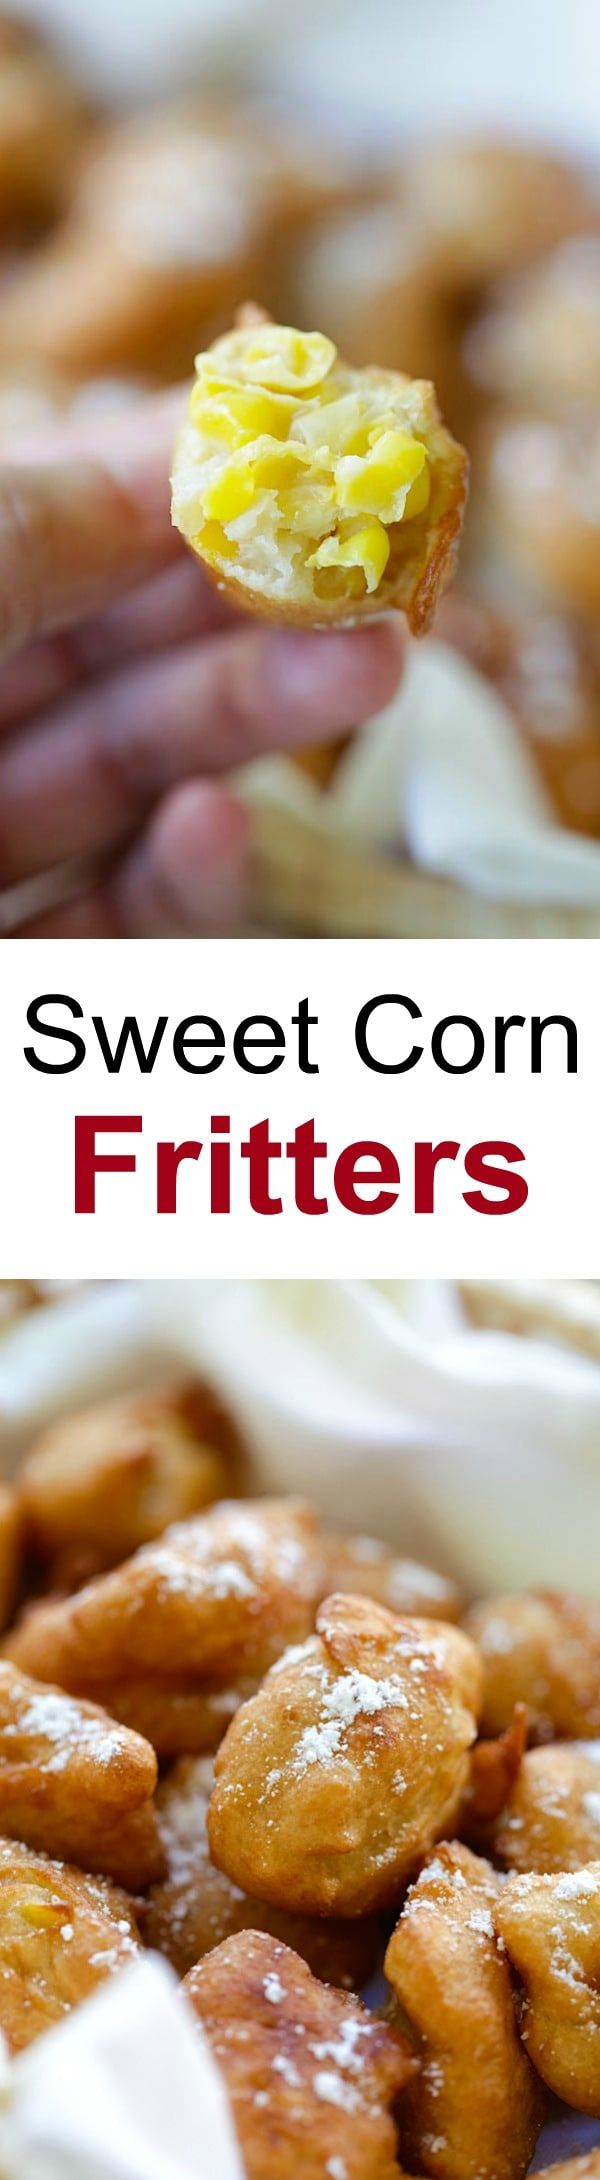 Sweet Corn Fritters – crispy, sweet fried fritters made with creamed corns. Takes 20 mins to make, so easy, so good & best for Game Day | rasamalaysia.com